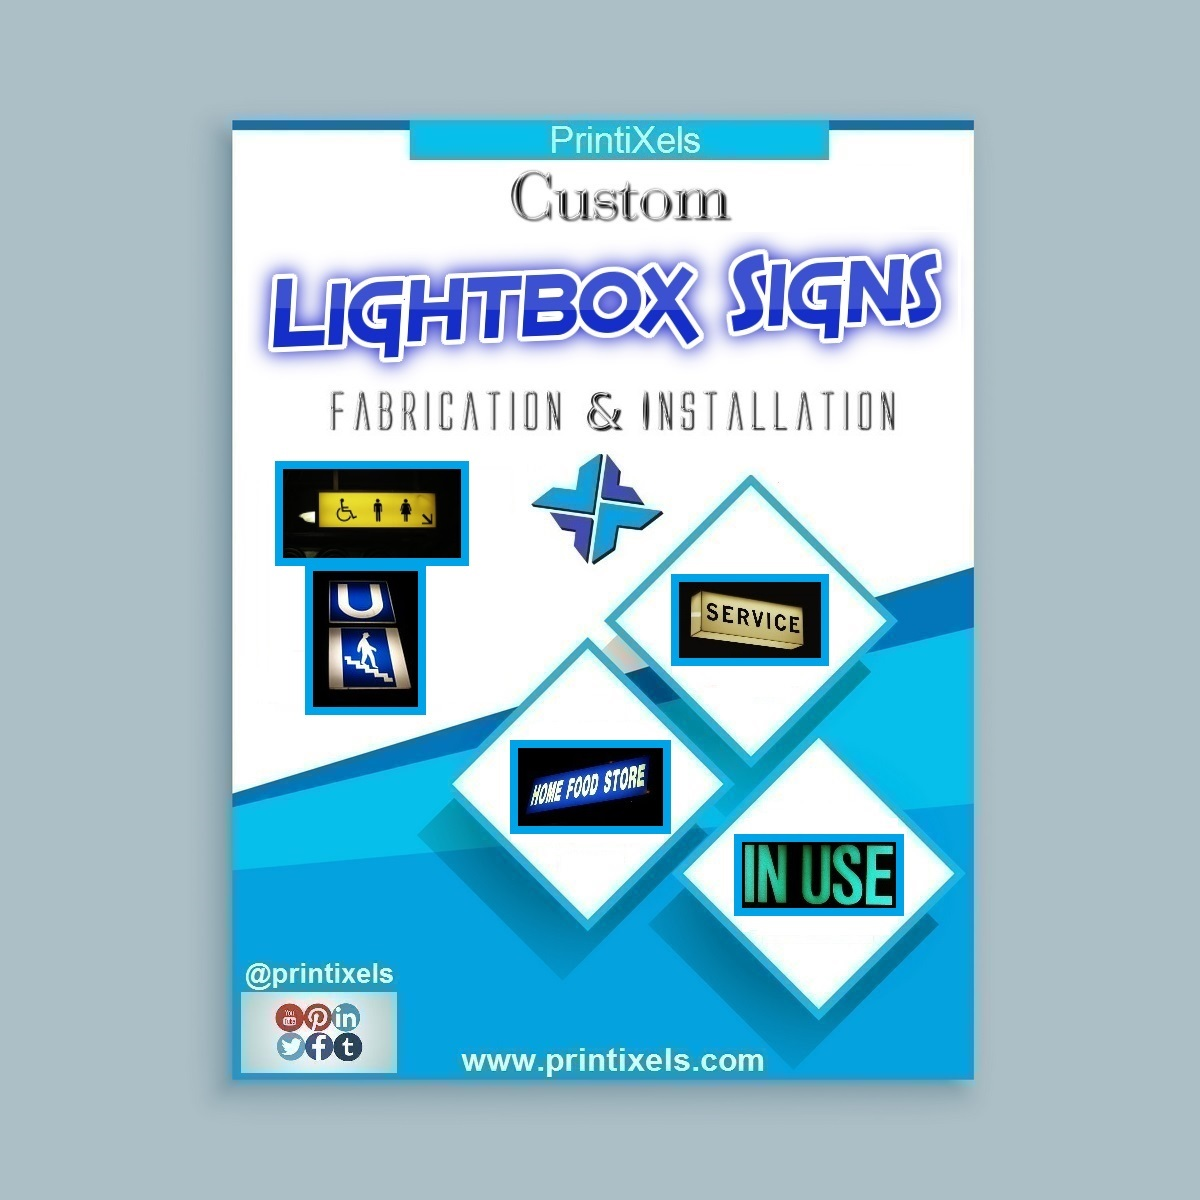 Custom Lightbox Signs